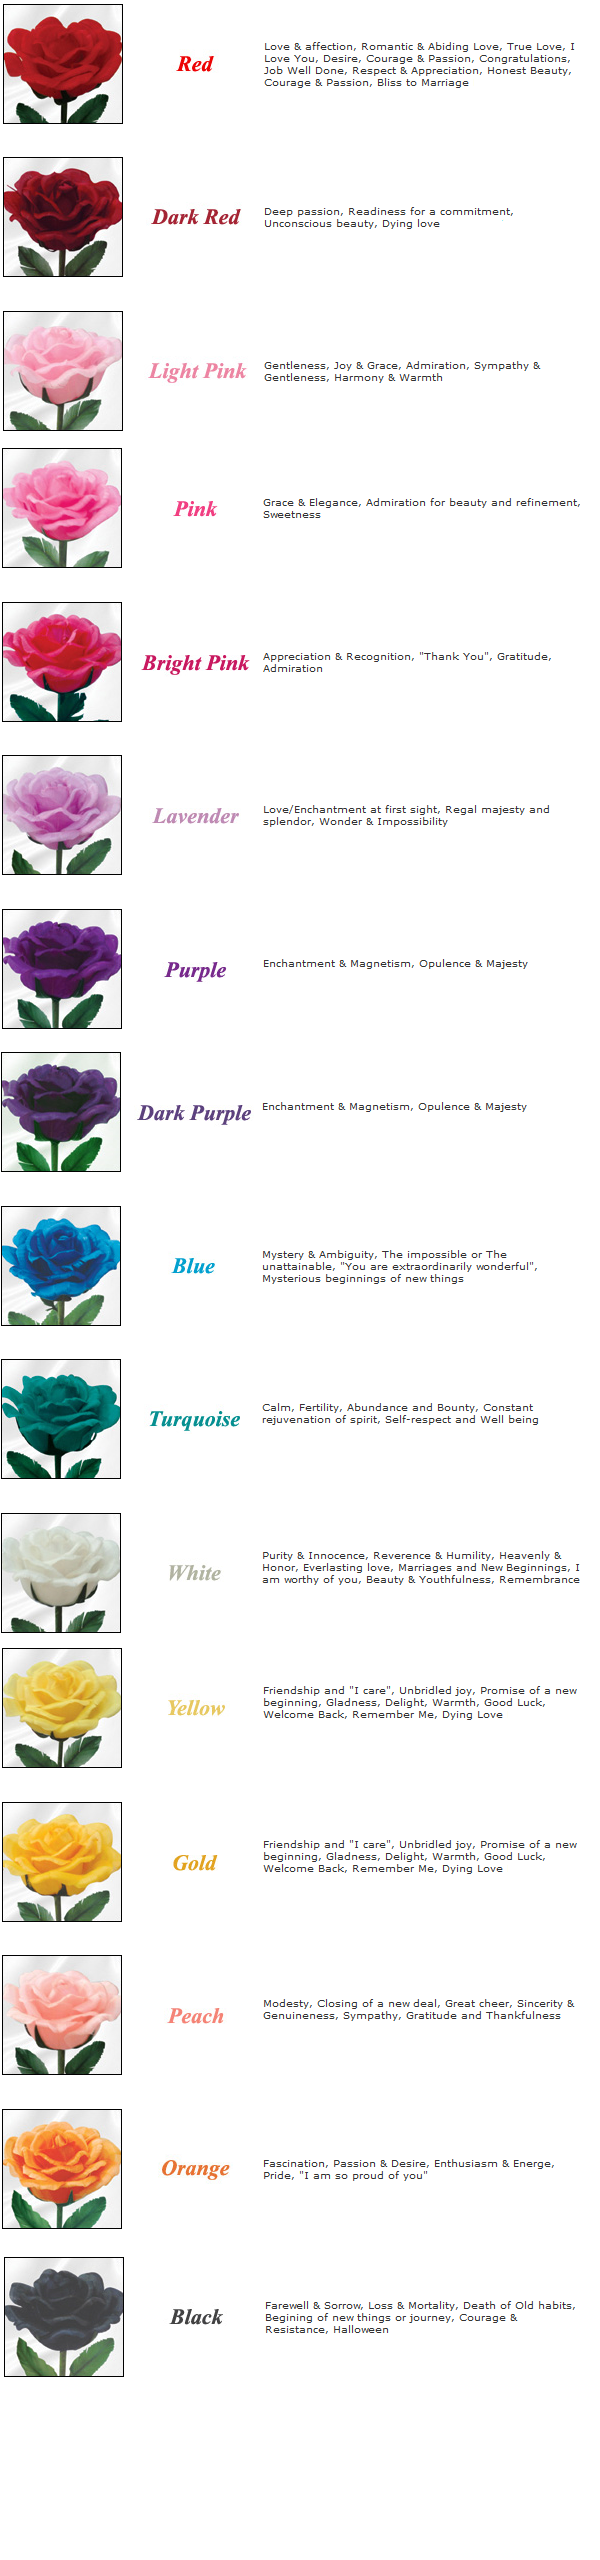 National Rose Month: The Meaning of Rose Colors | Infographic